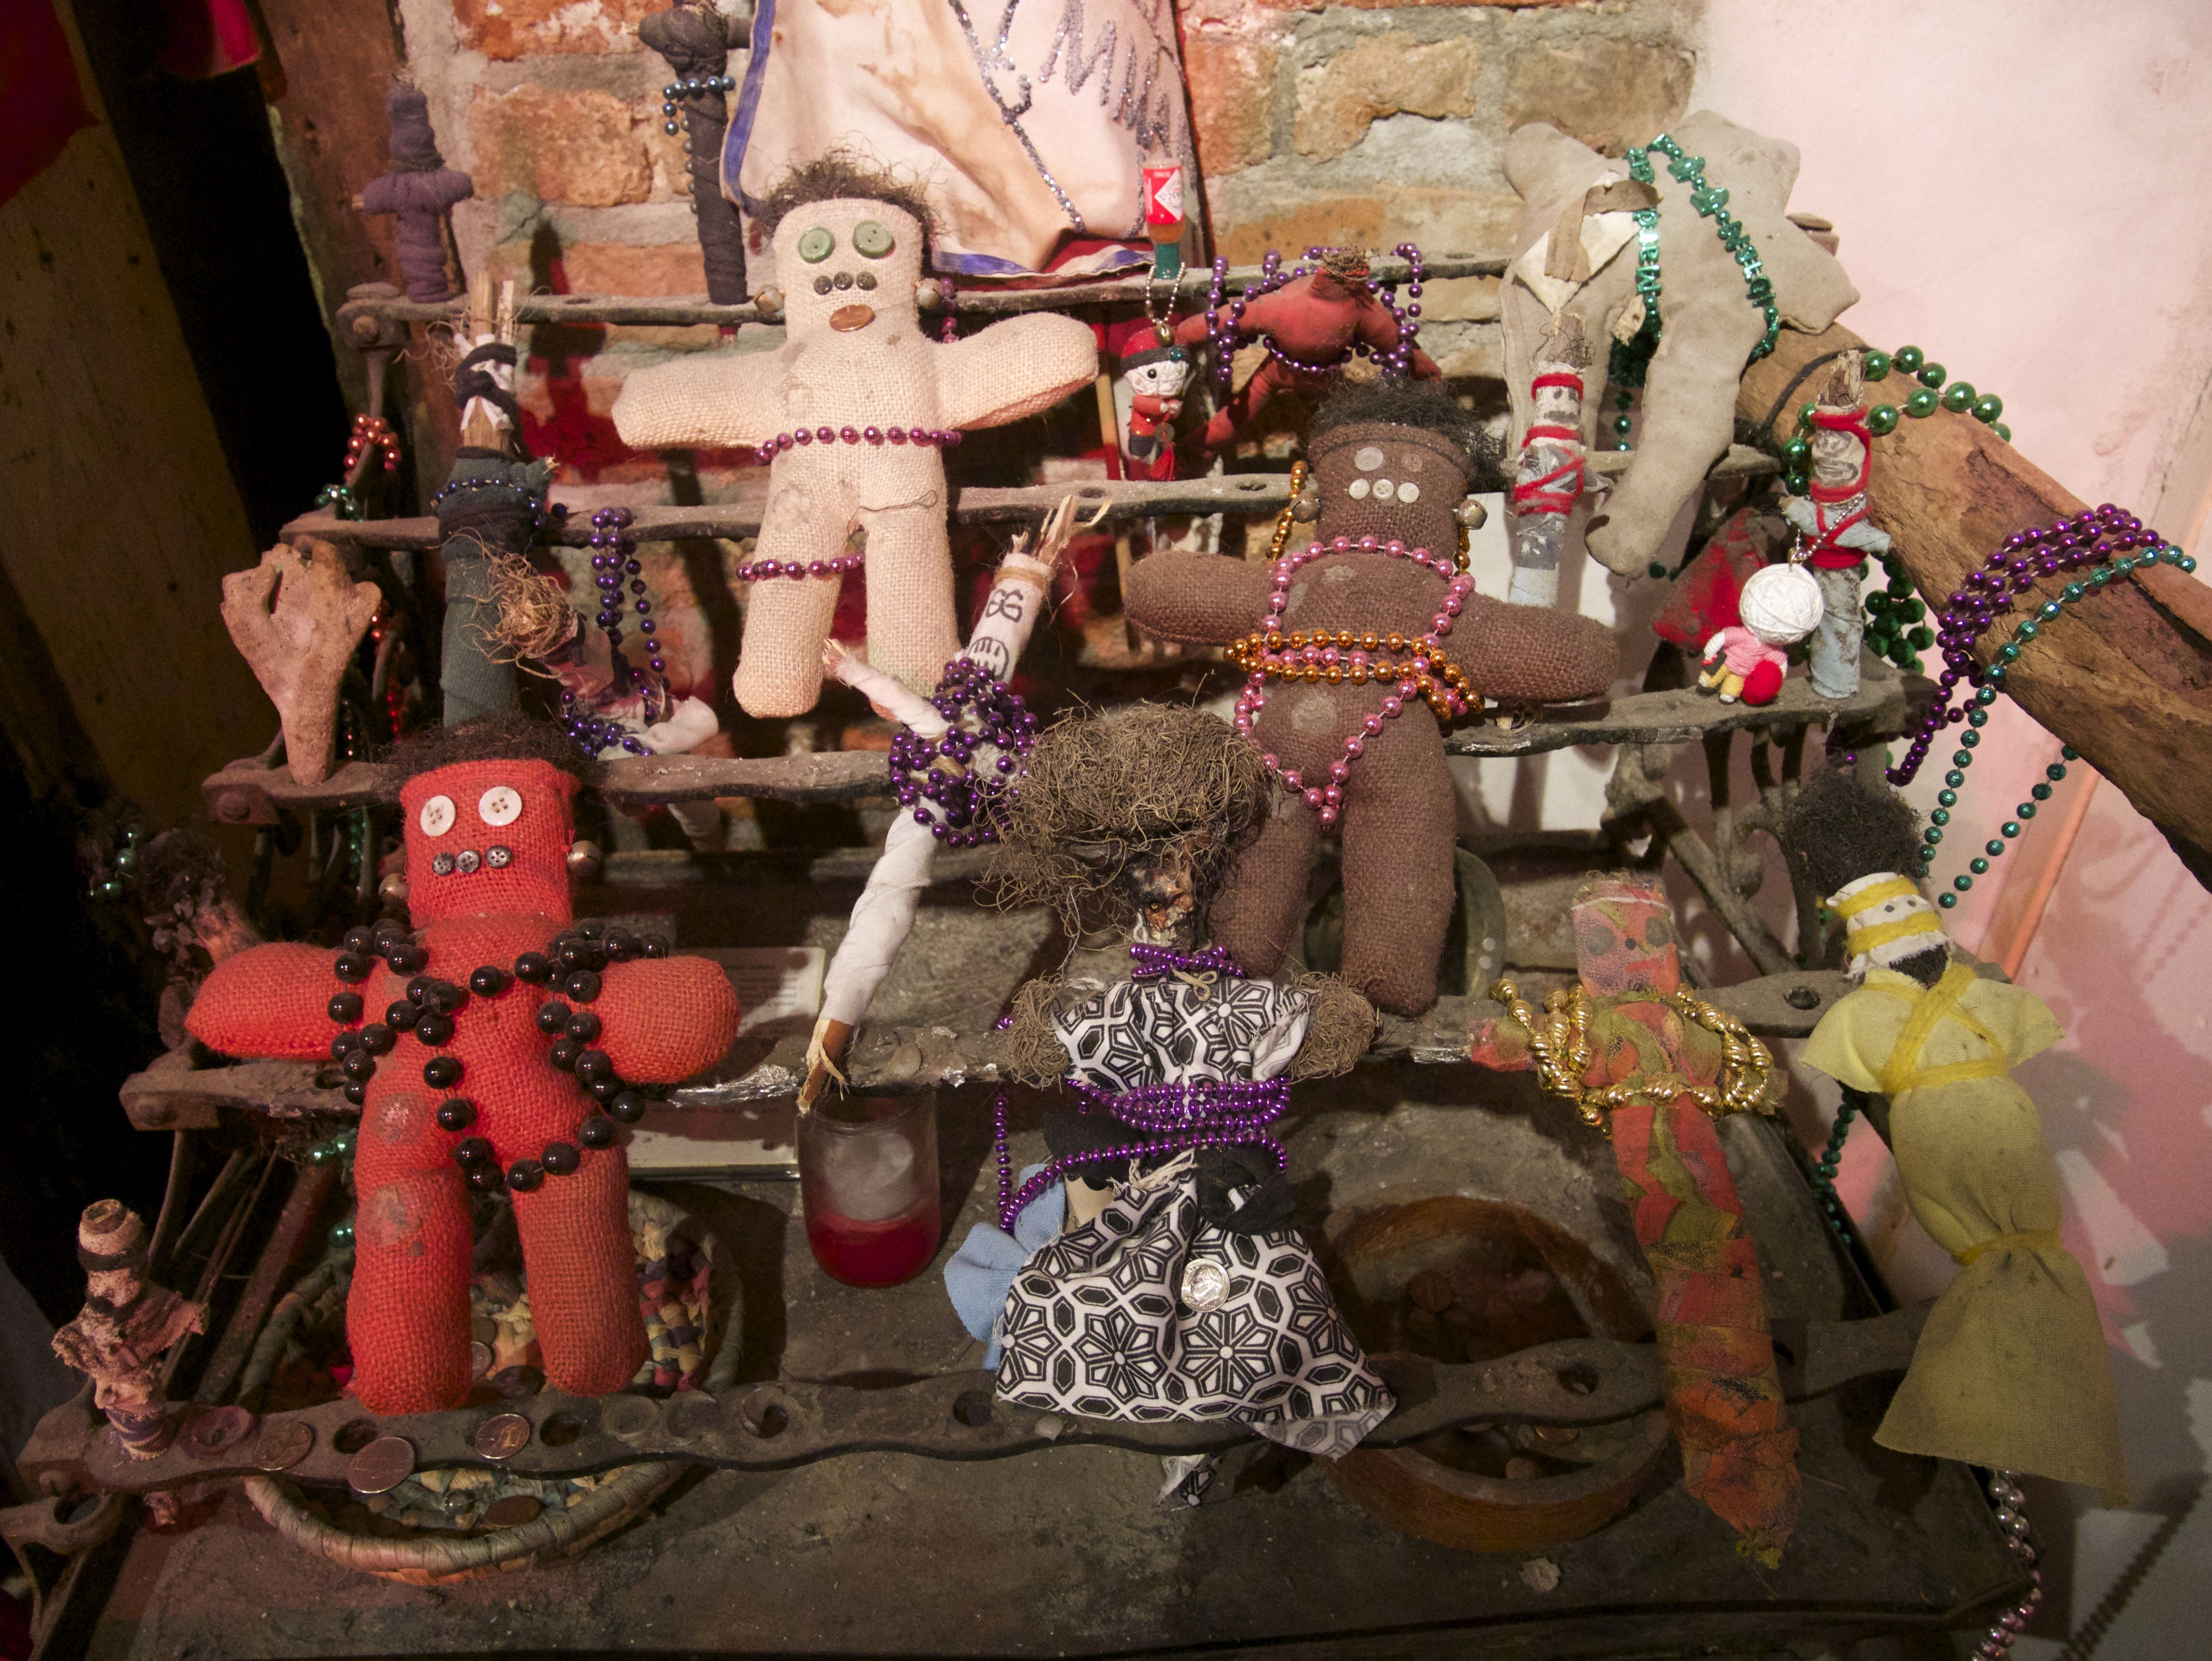 New Orleans Historic Voodoo Museum Specialty Museums Museums